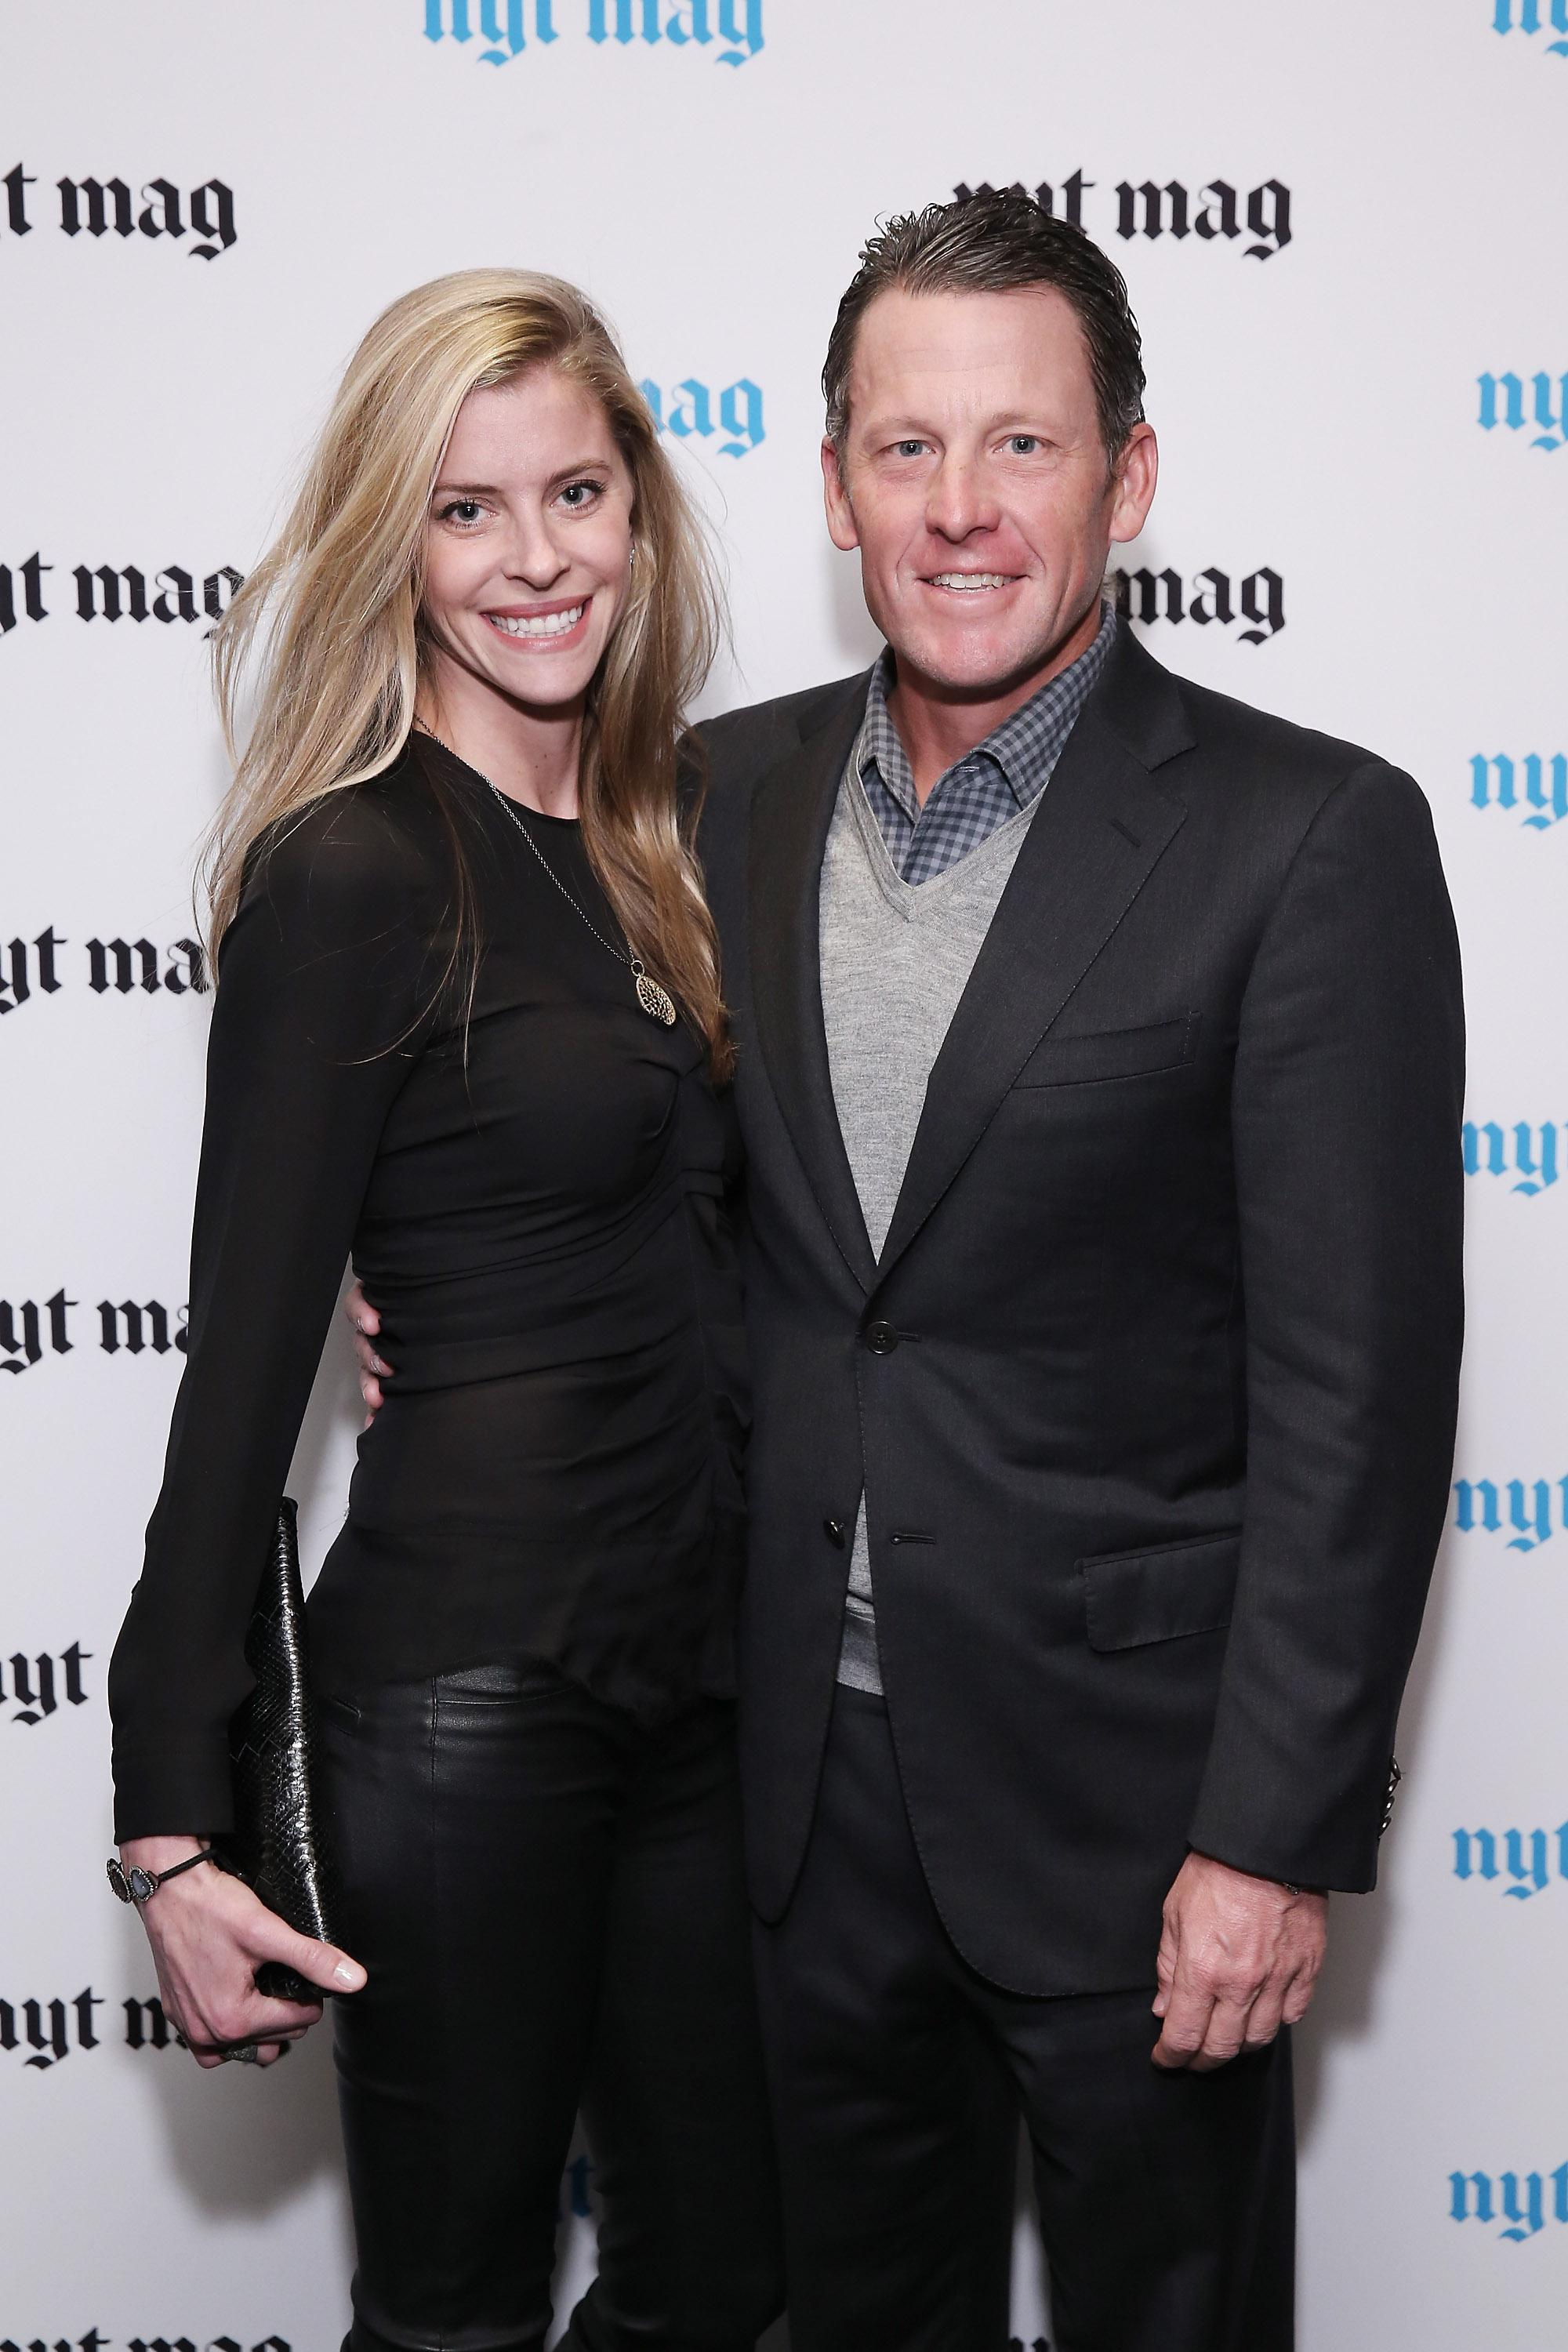 Hansen and Armstrong at a New York Times event in 2015